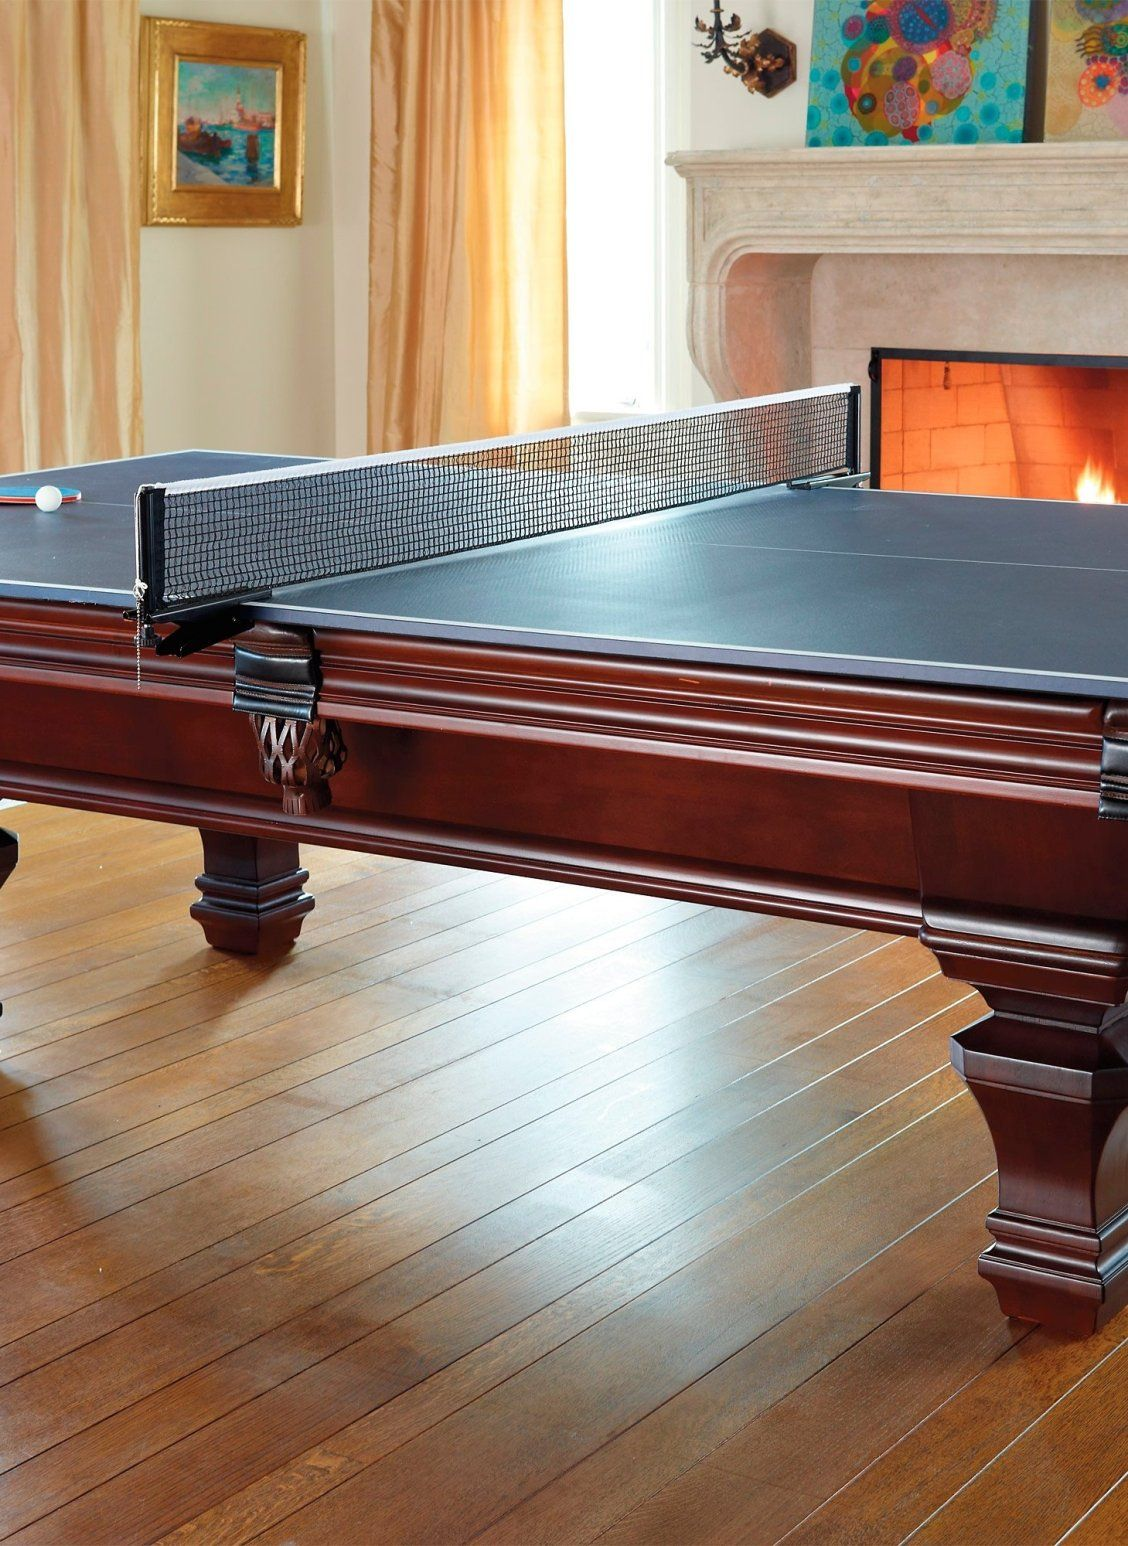 Table Tennis Room Design: Turn Your Billiards Table Into The Ultimate Game Room